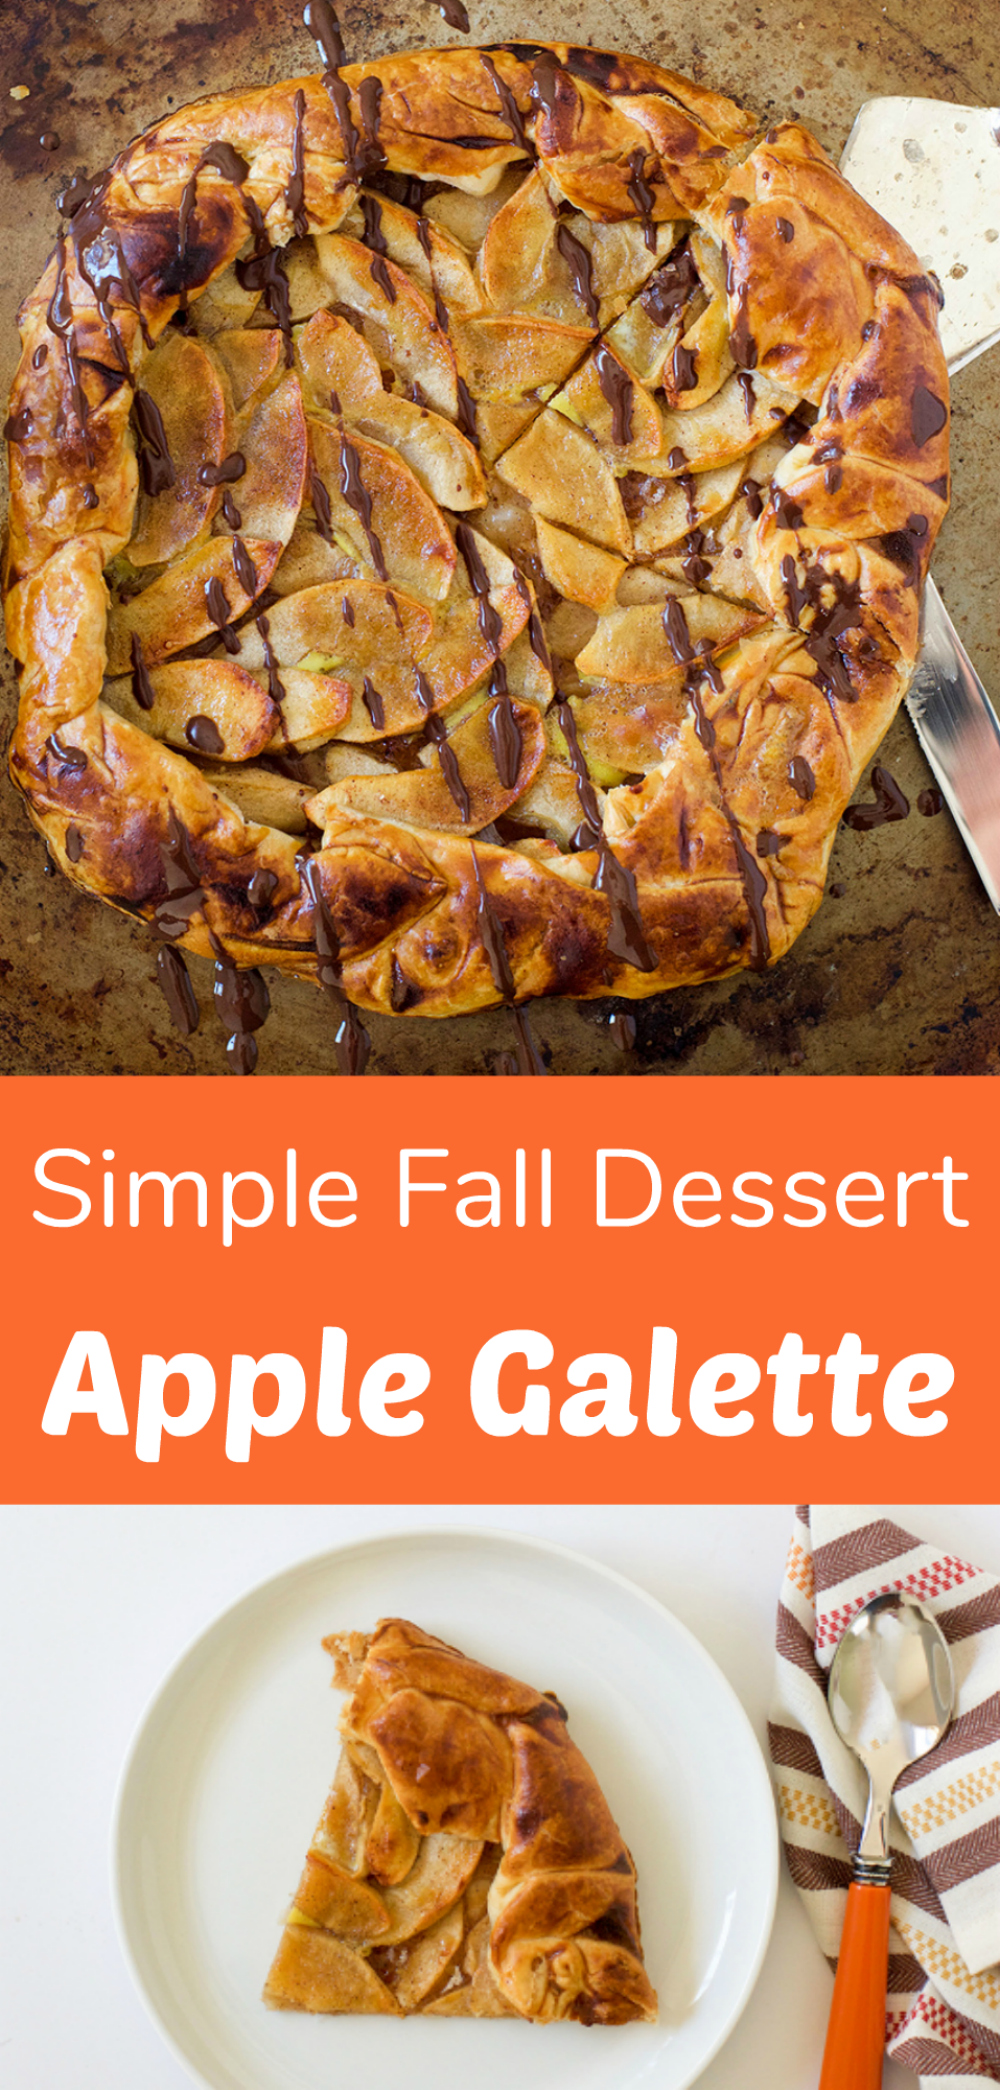 Apple Galette Dessert Recipe